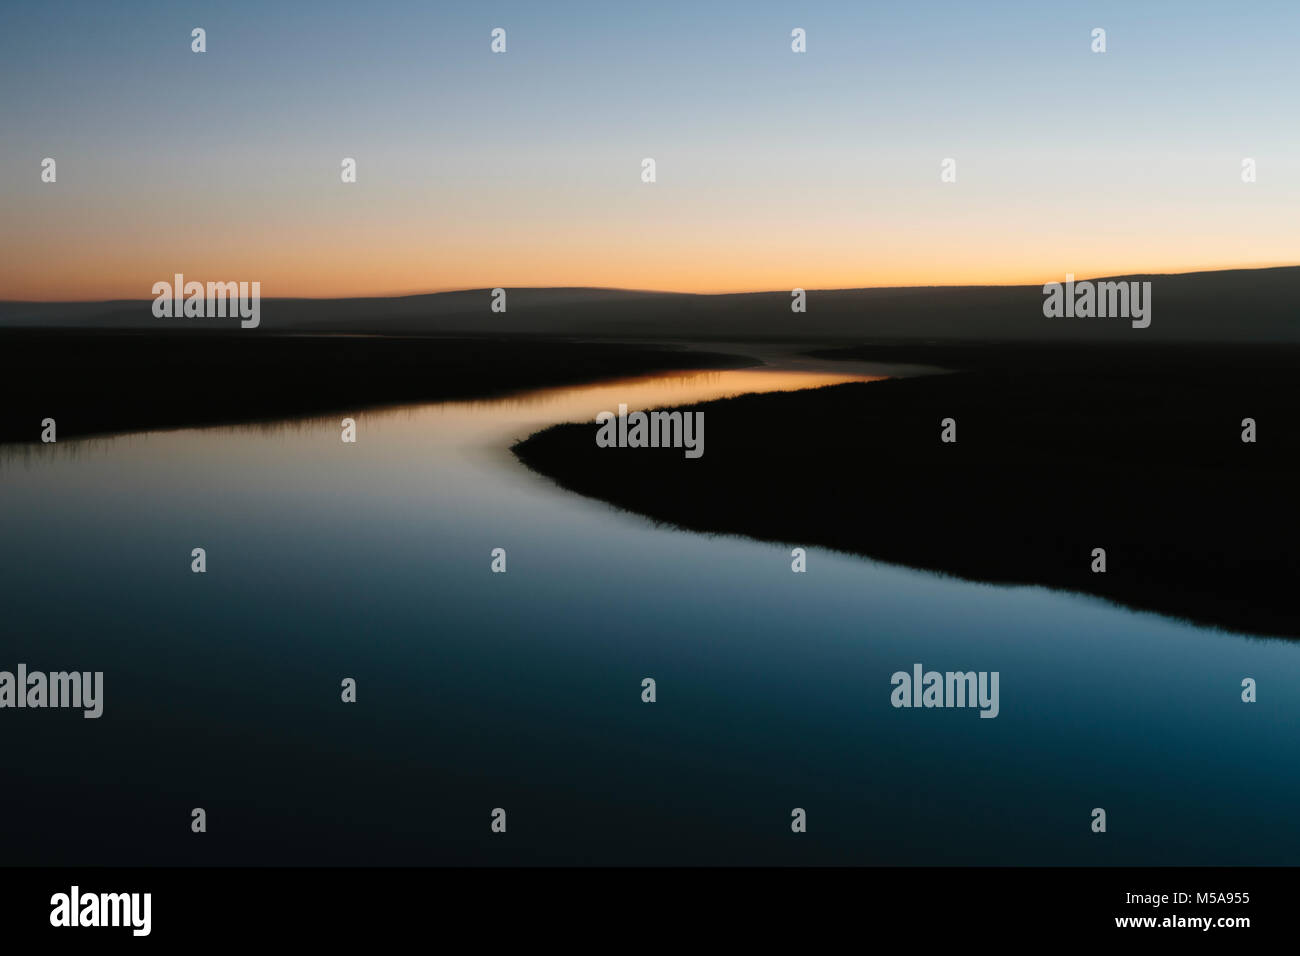 The open spaces of marshland and water channels. Flat calm water.  Dusk. - Stock Image